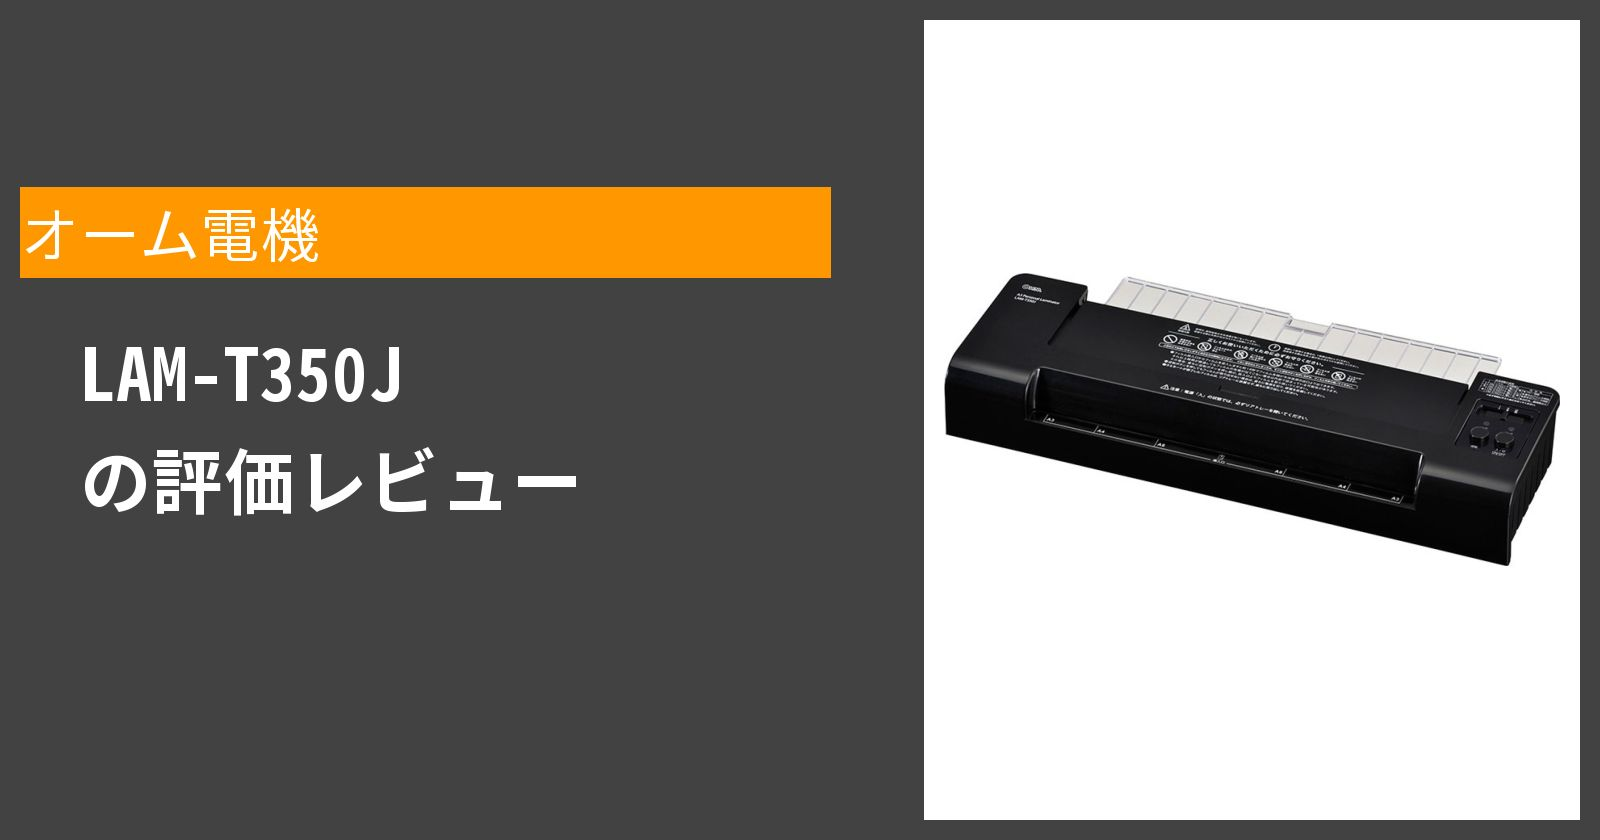 LAM-T350Jを徹底評価